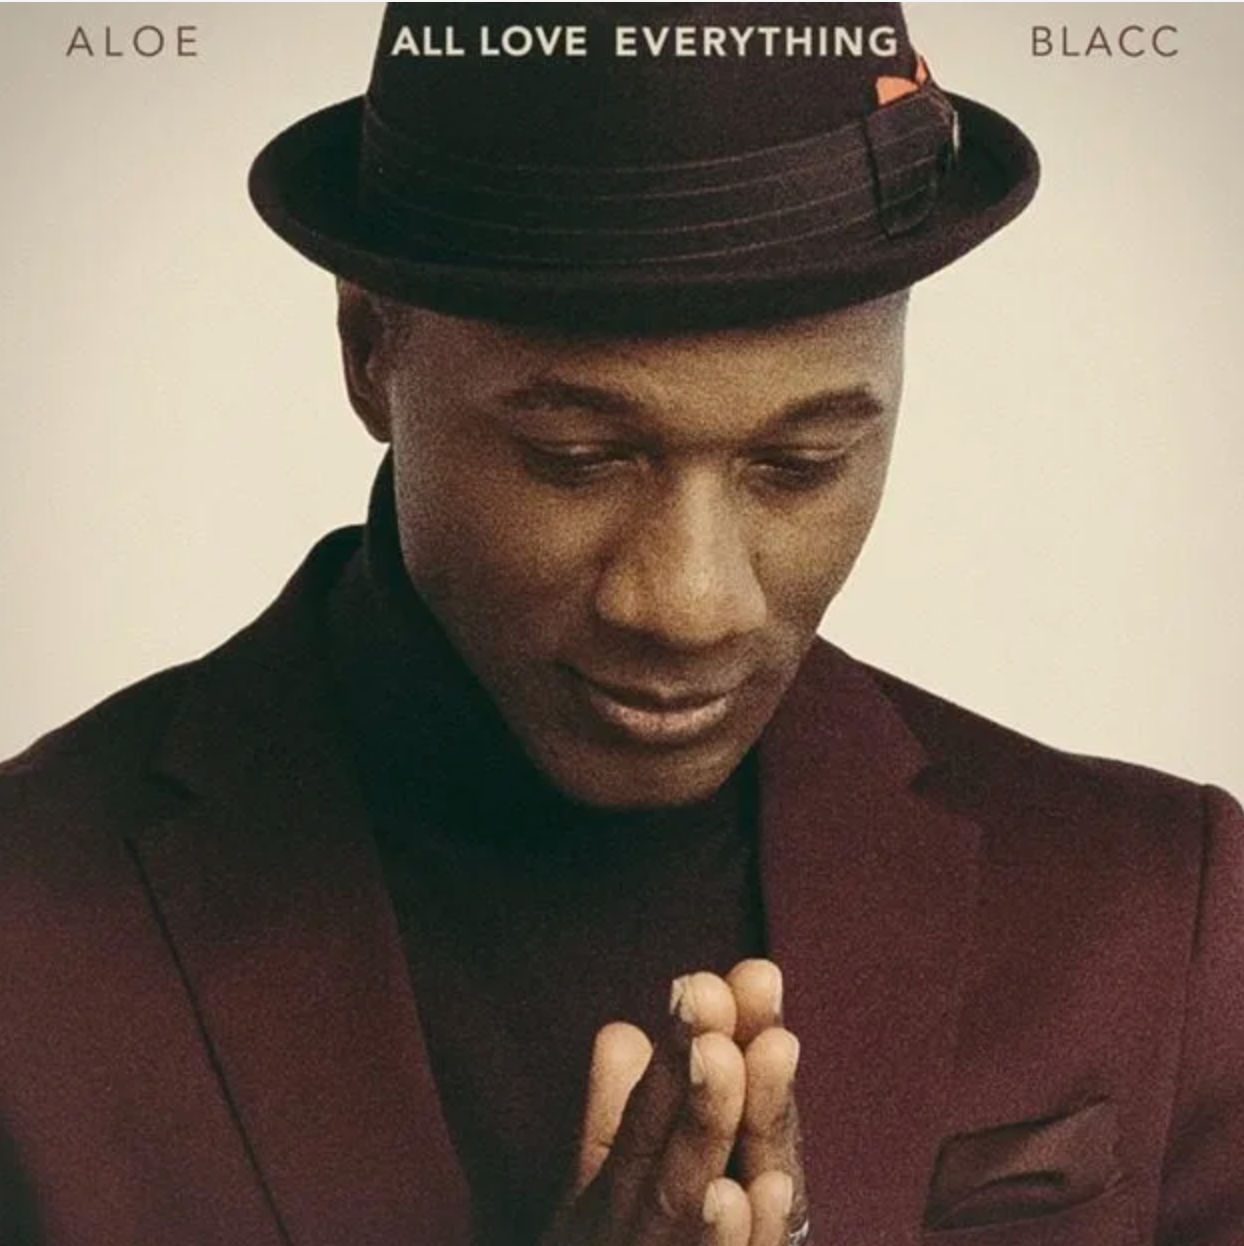 New Aloe Blacc Album 'All Love Everything' Out Now